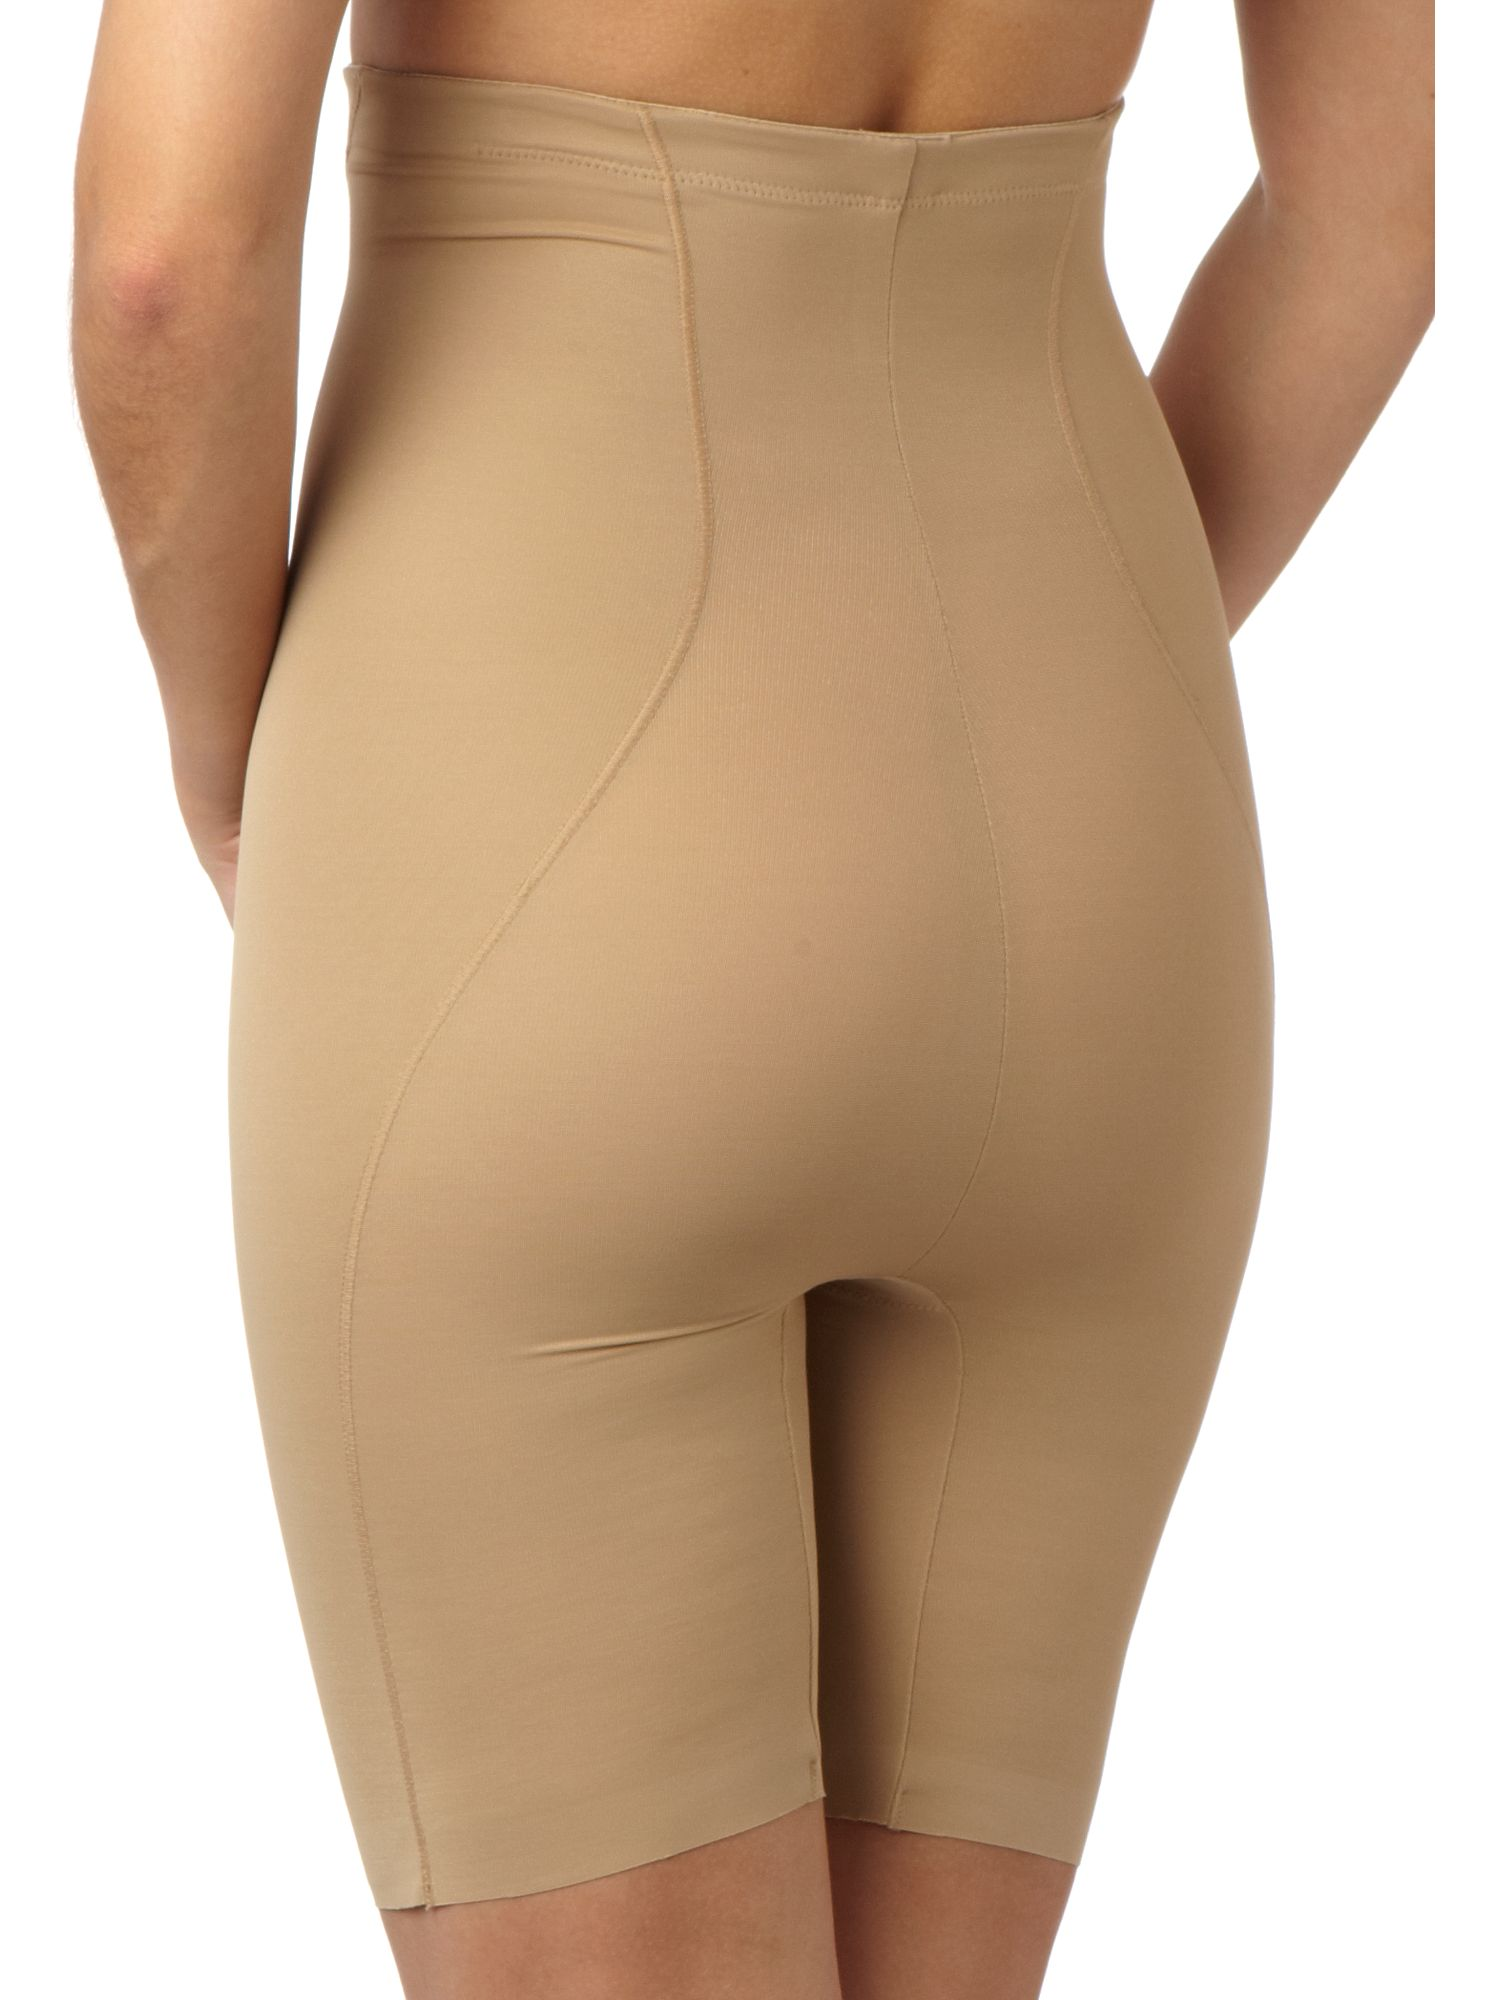 Ultra high-waist thigh slimmer